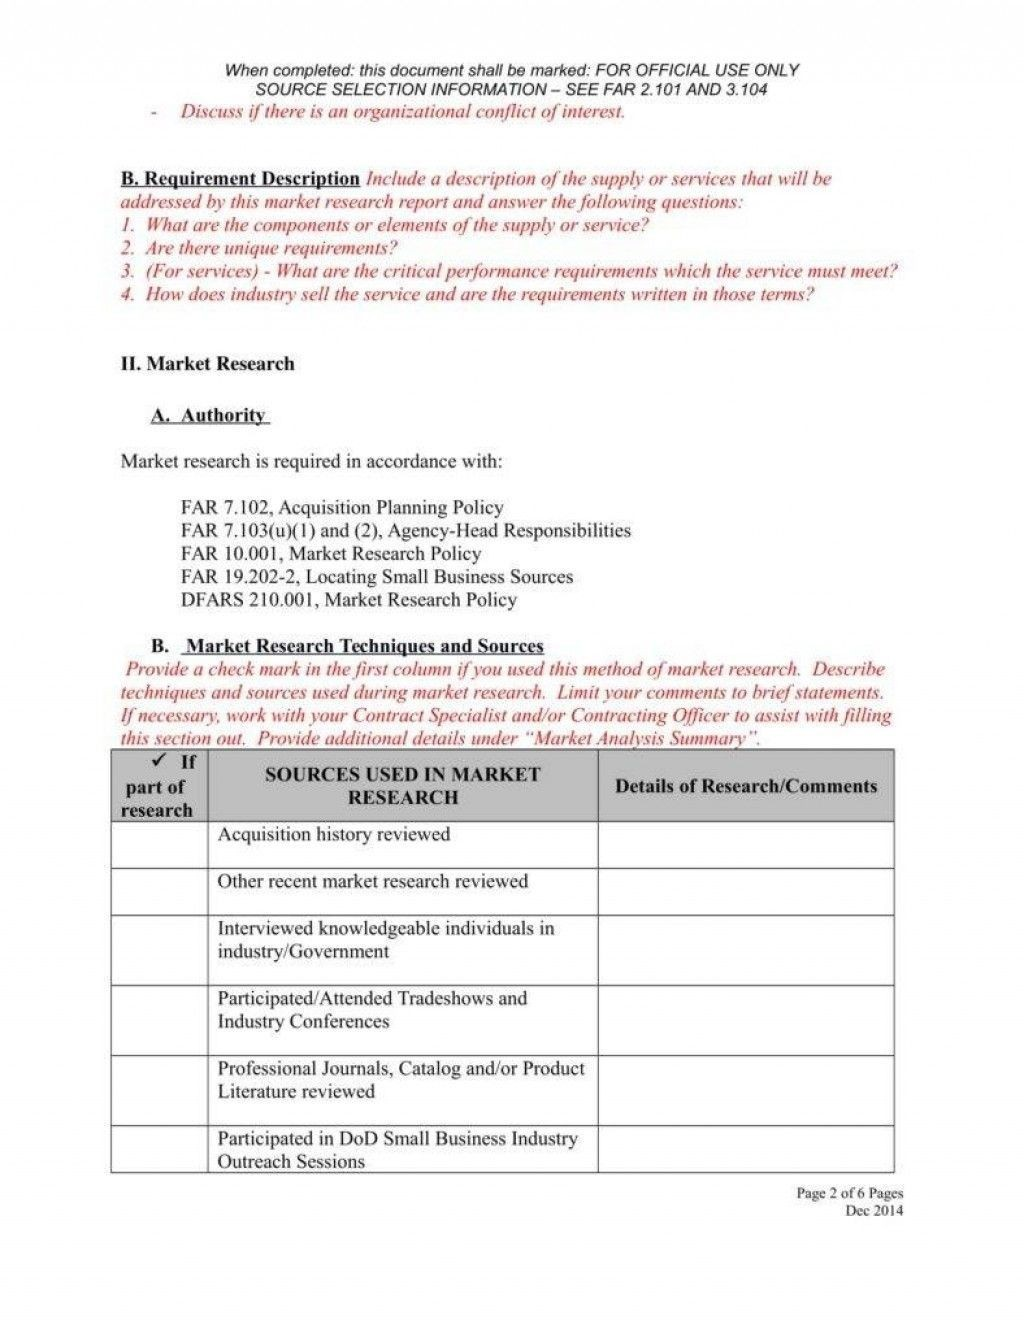 008 Shocking Market Research Report Template Image  Excel Sample FreeLarge